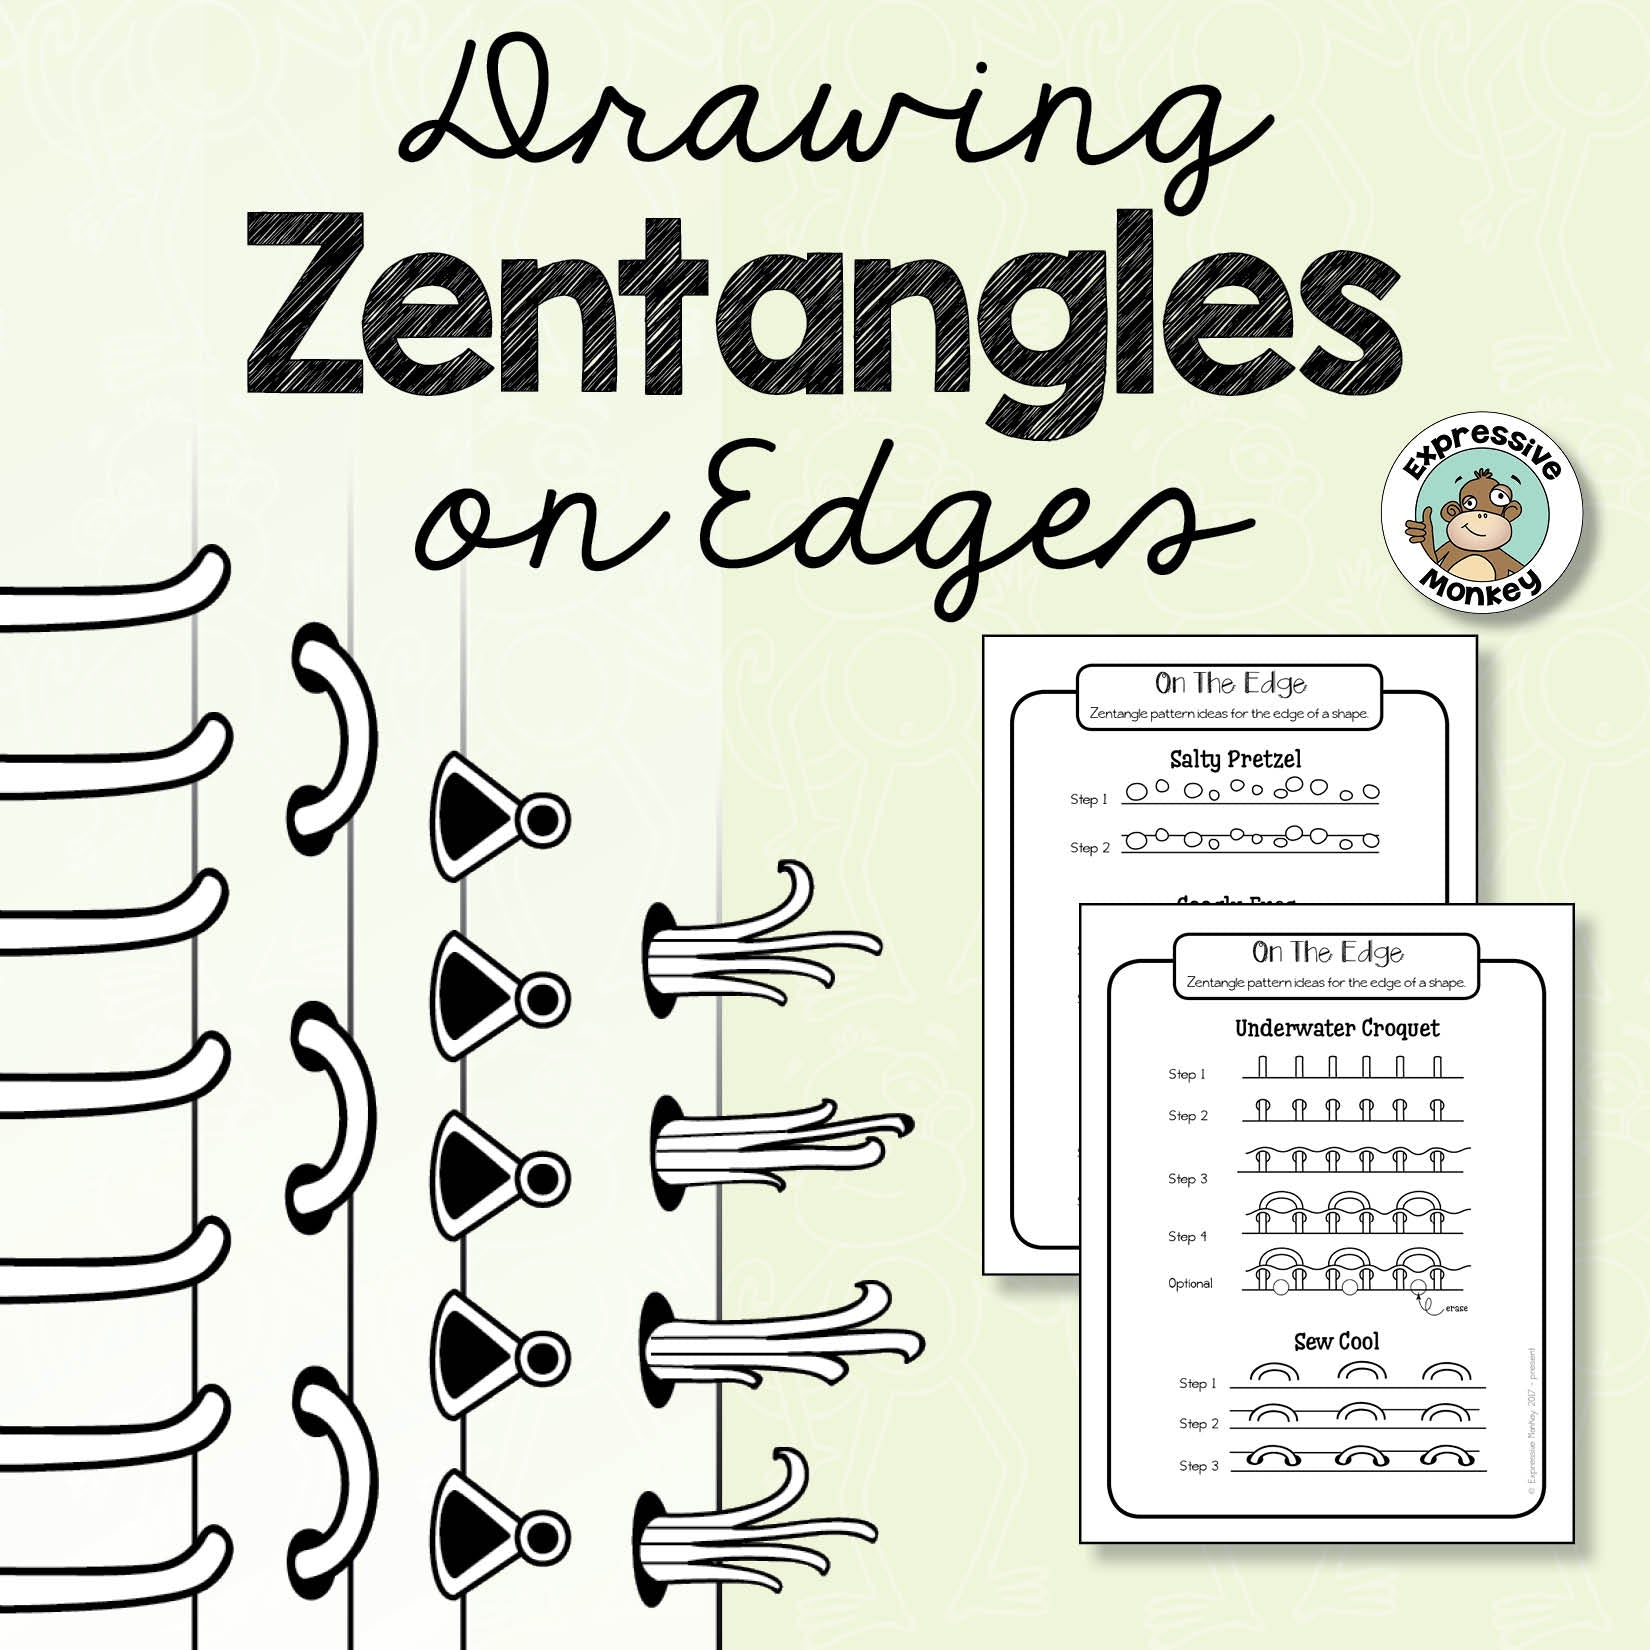 Zentangle Patterns Step By Step New Design Inspiration